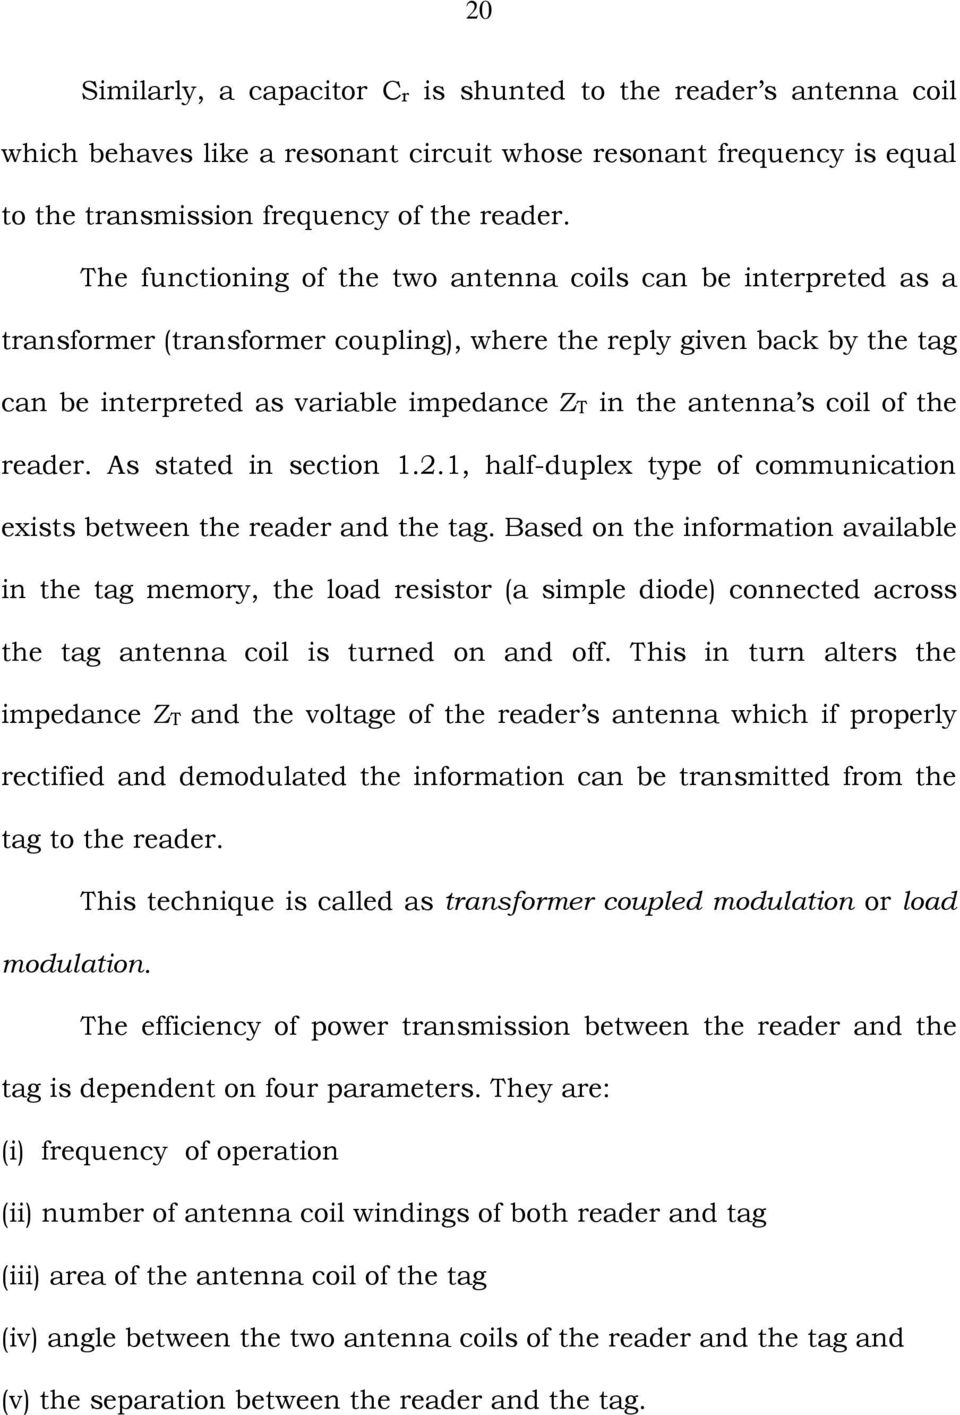 coil of the reader. As stated in section 1.2.1, half-duplex type of communication exists between the reader and the tag.